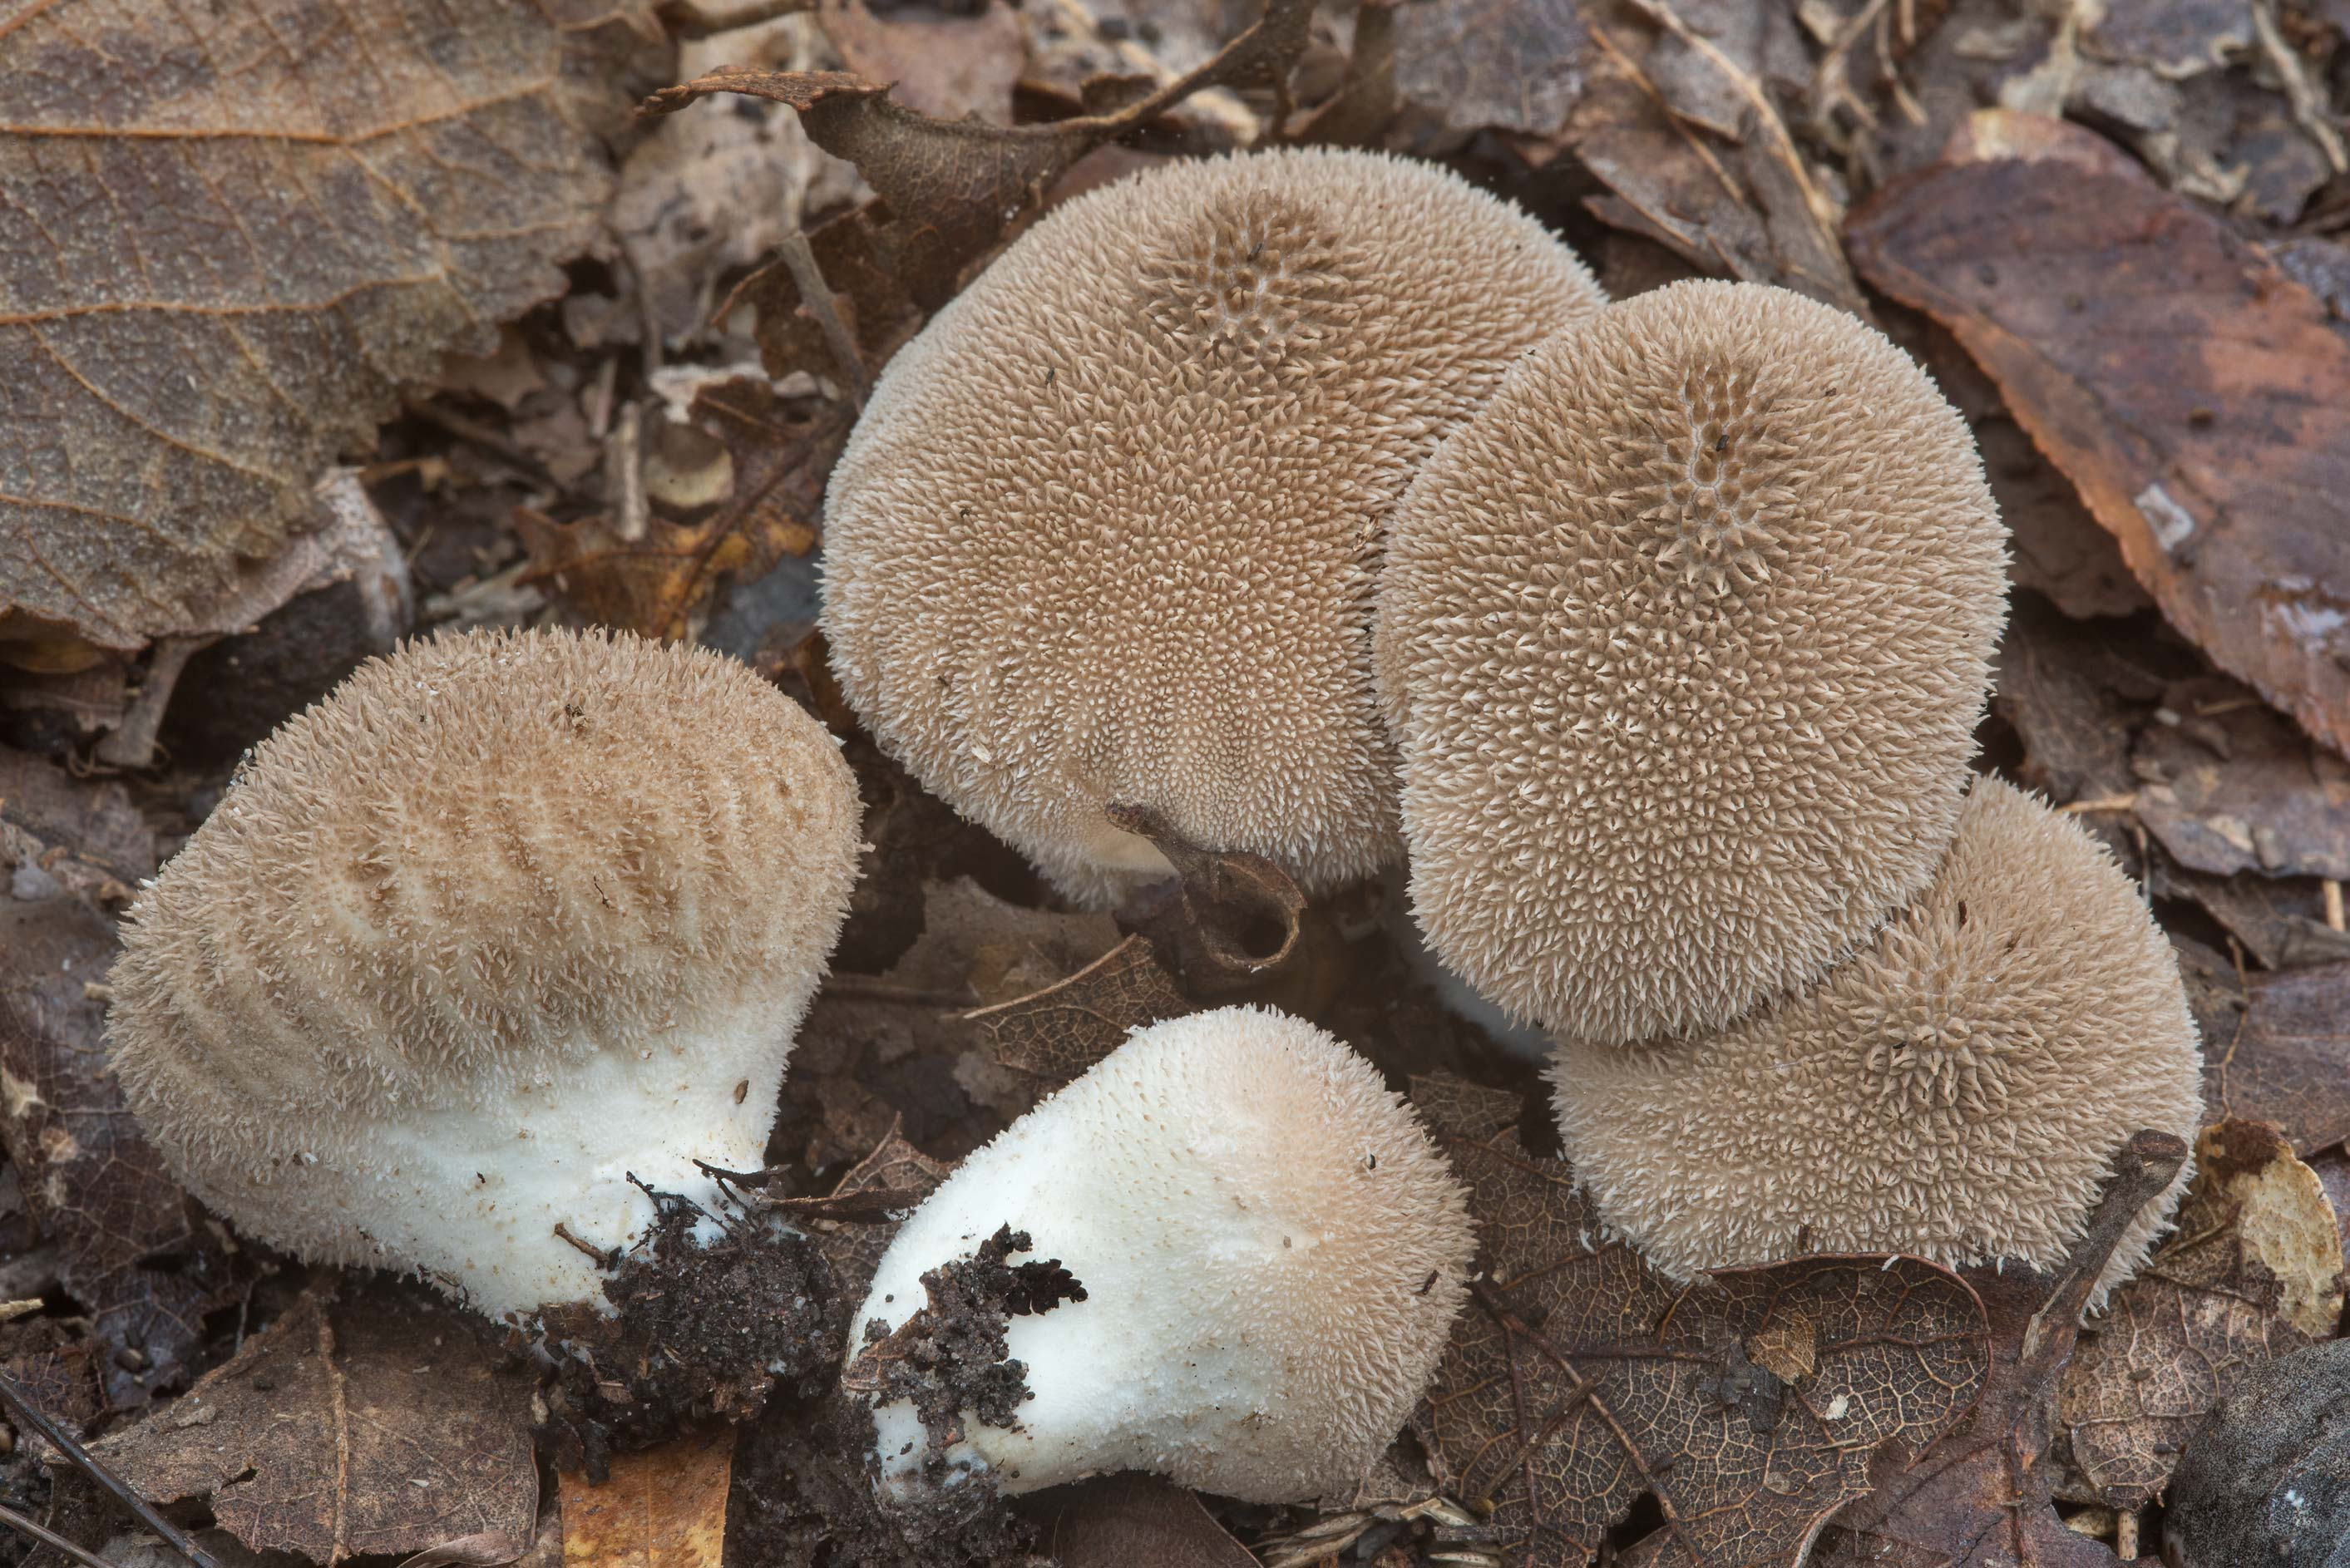 Puffball mushrooms Lycoperdon umbrinum in Lick Creek Park. College Station, Texas